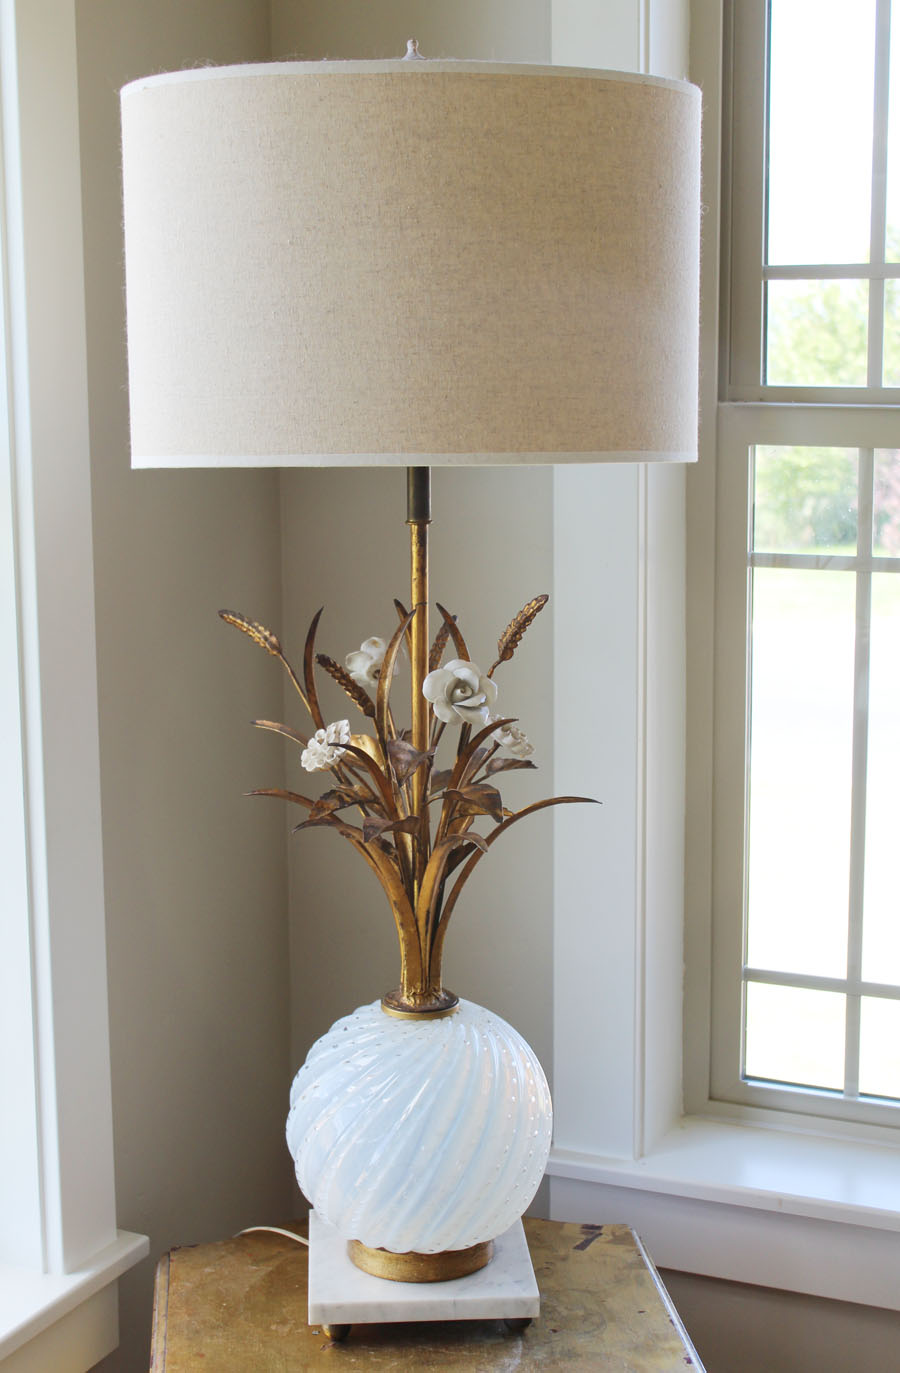 Italian Murano Barovier & Toso Lamp with Flowers